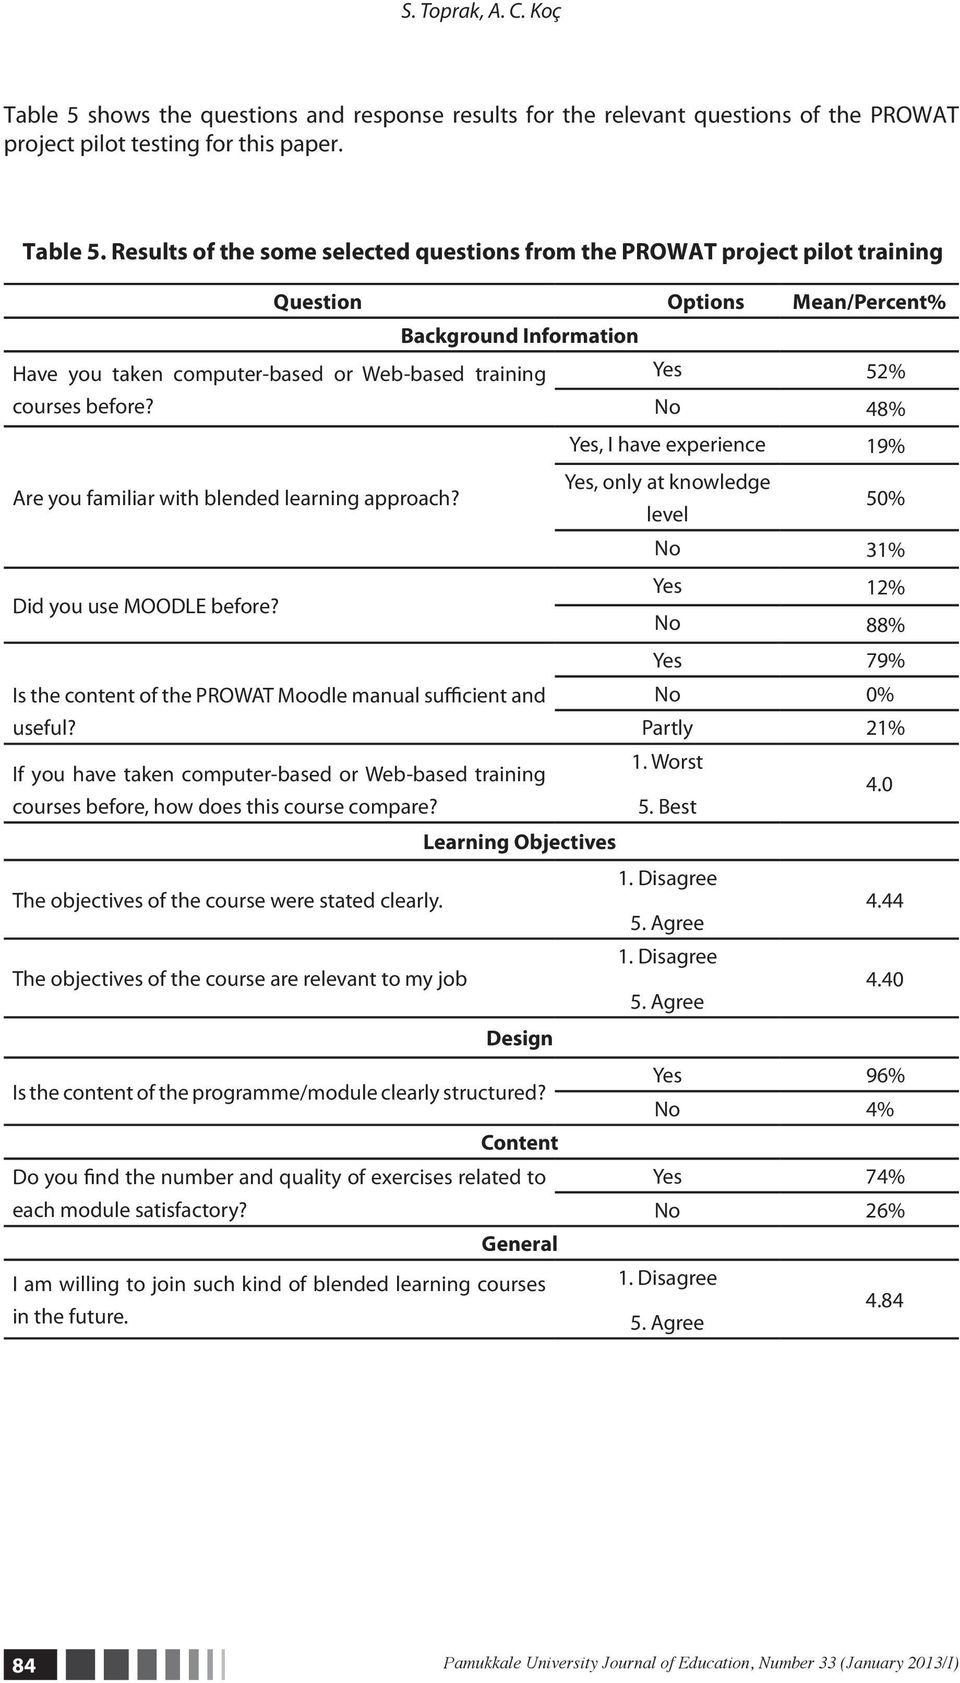 Results of the some selected questions from the PROWAT project pilot training Question Options Mean/Percent% Background Information Have you taken computer-based or Web-based training Yes 52% courses